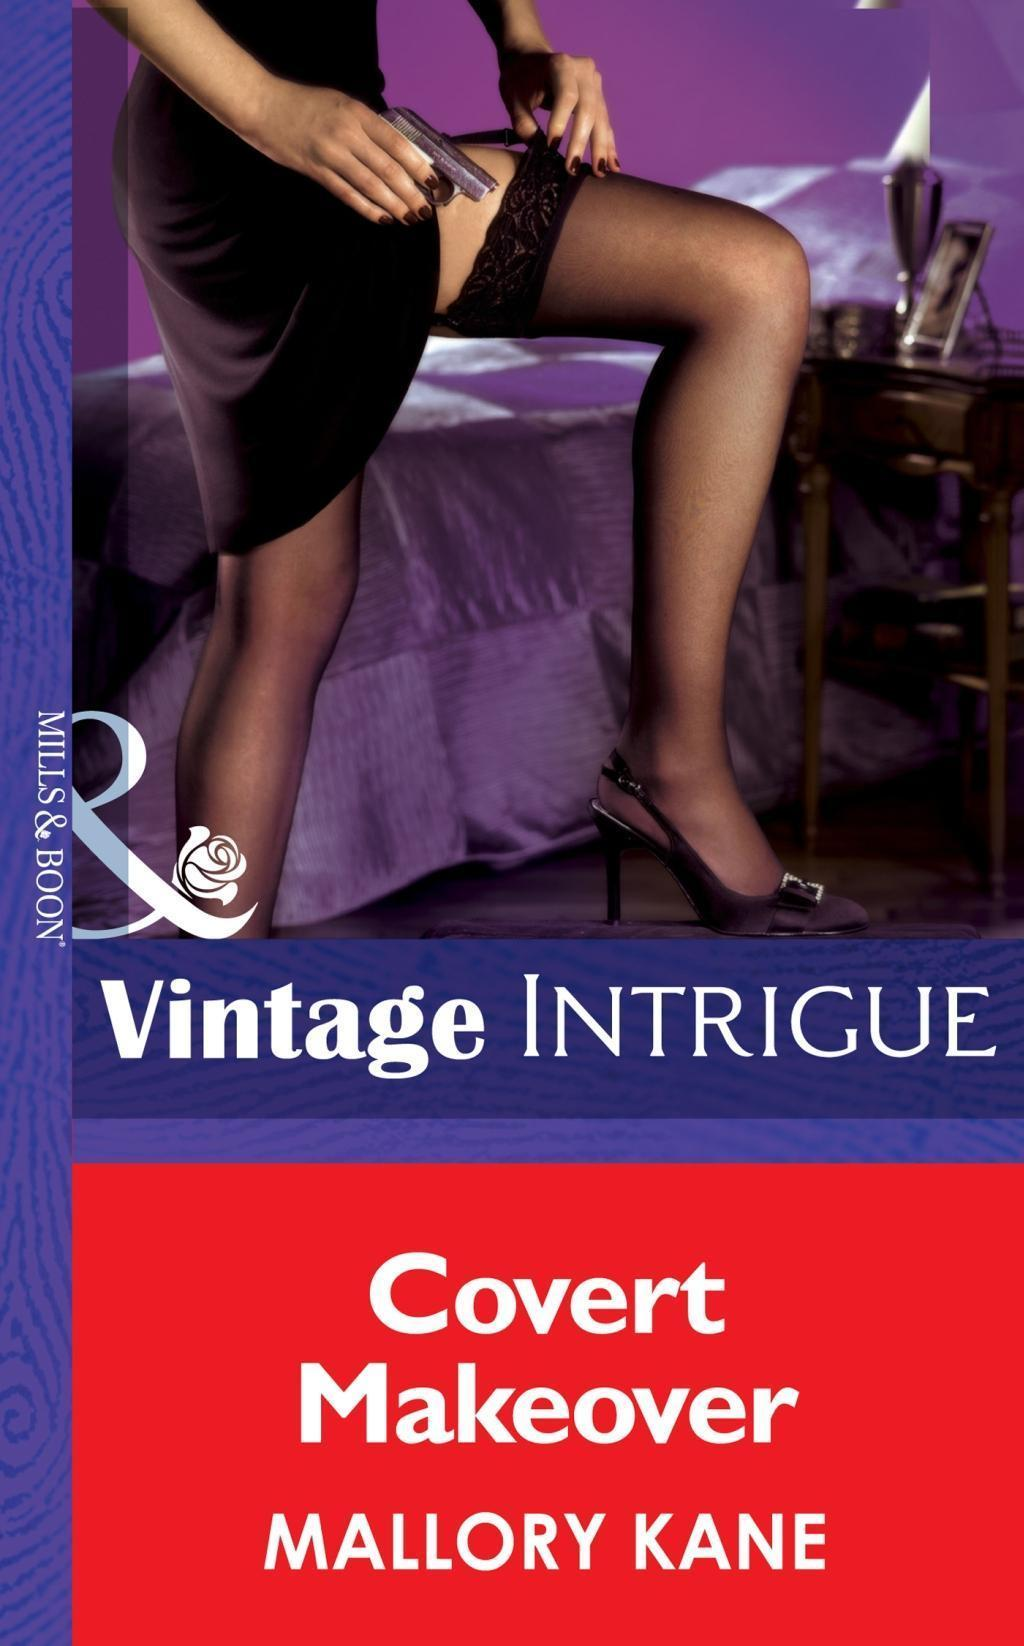 Covert Makeover (Mills & Boon Intrigue) (Miami Confidential, Book 3)